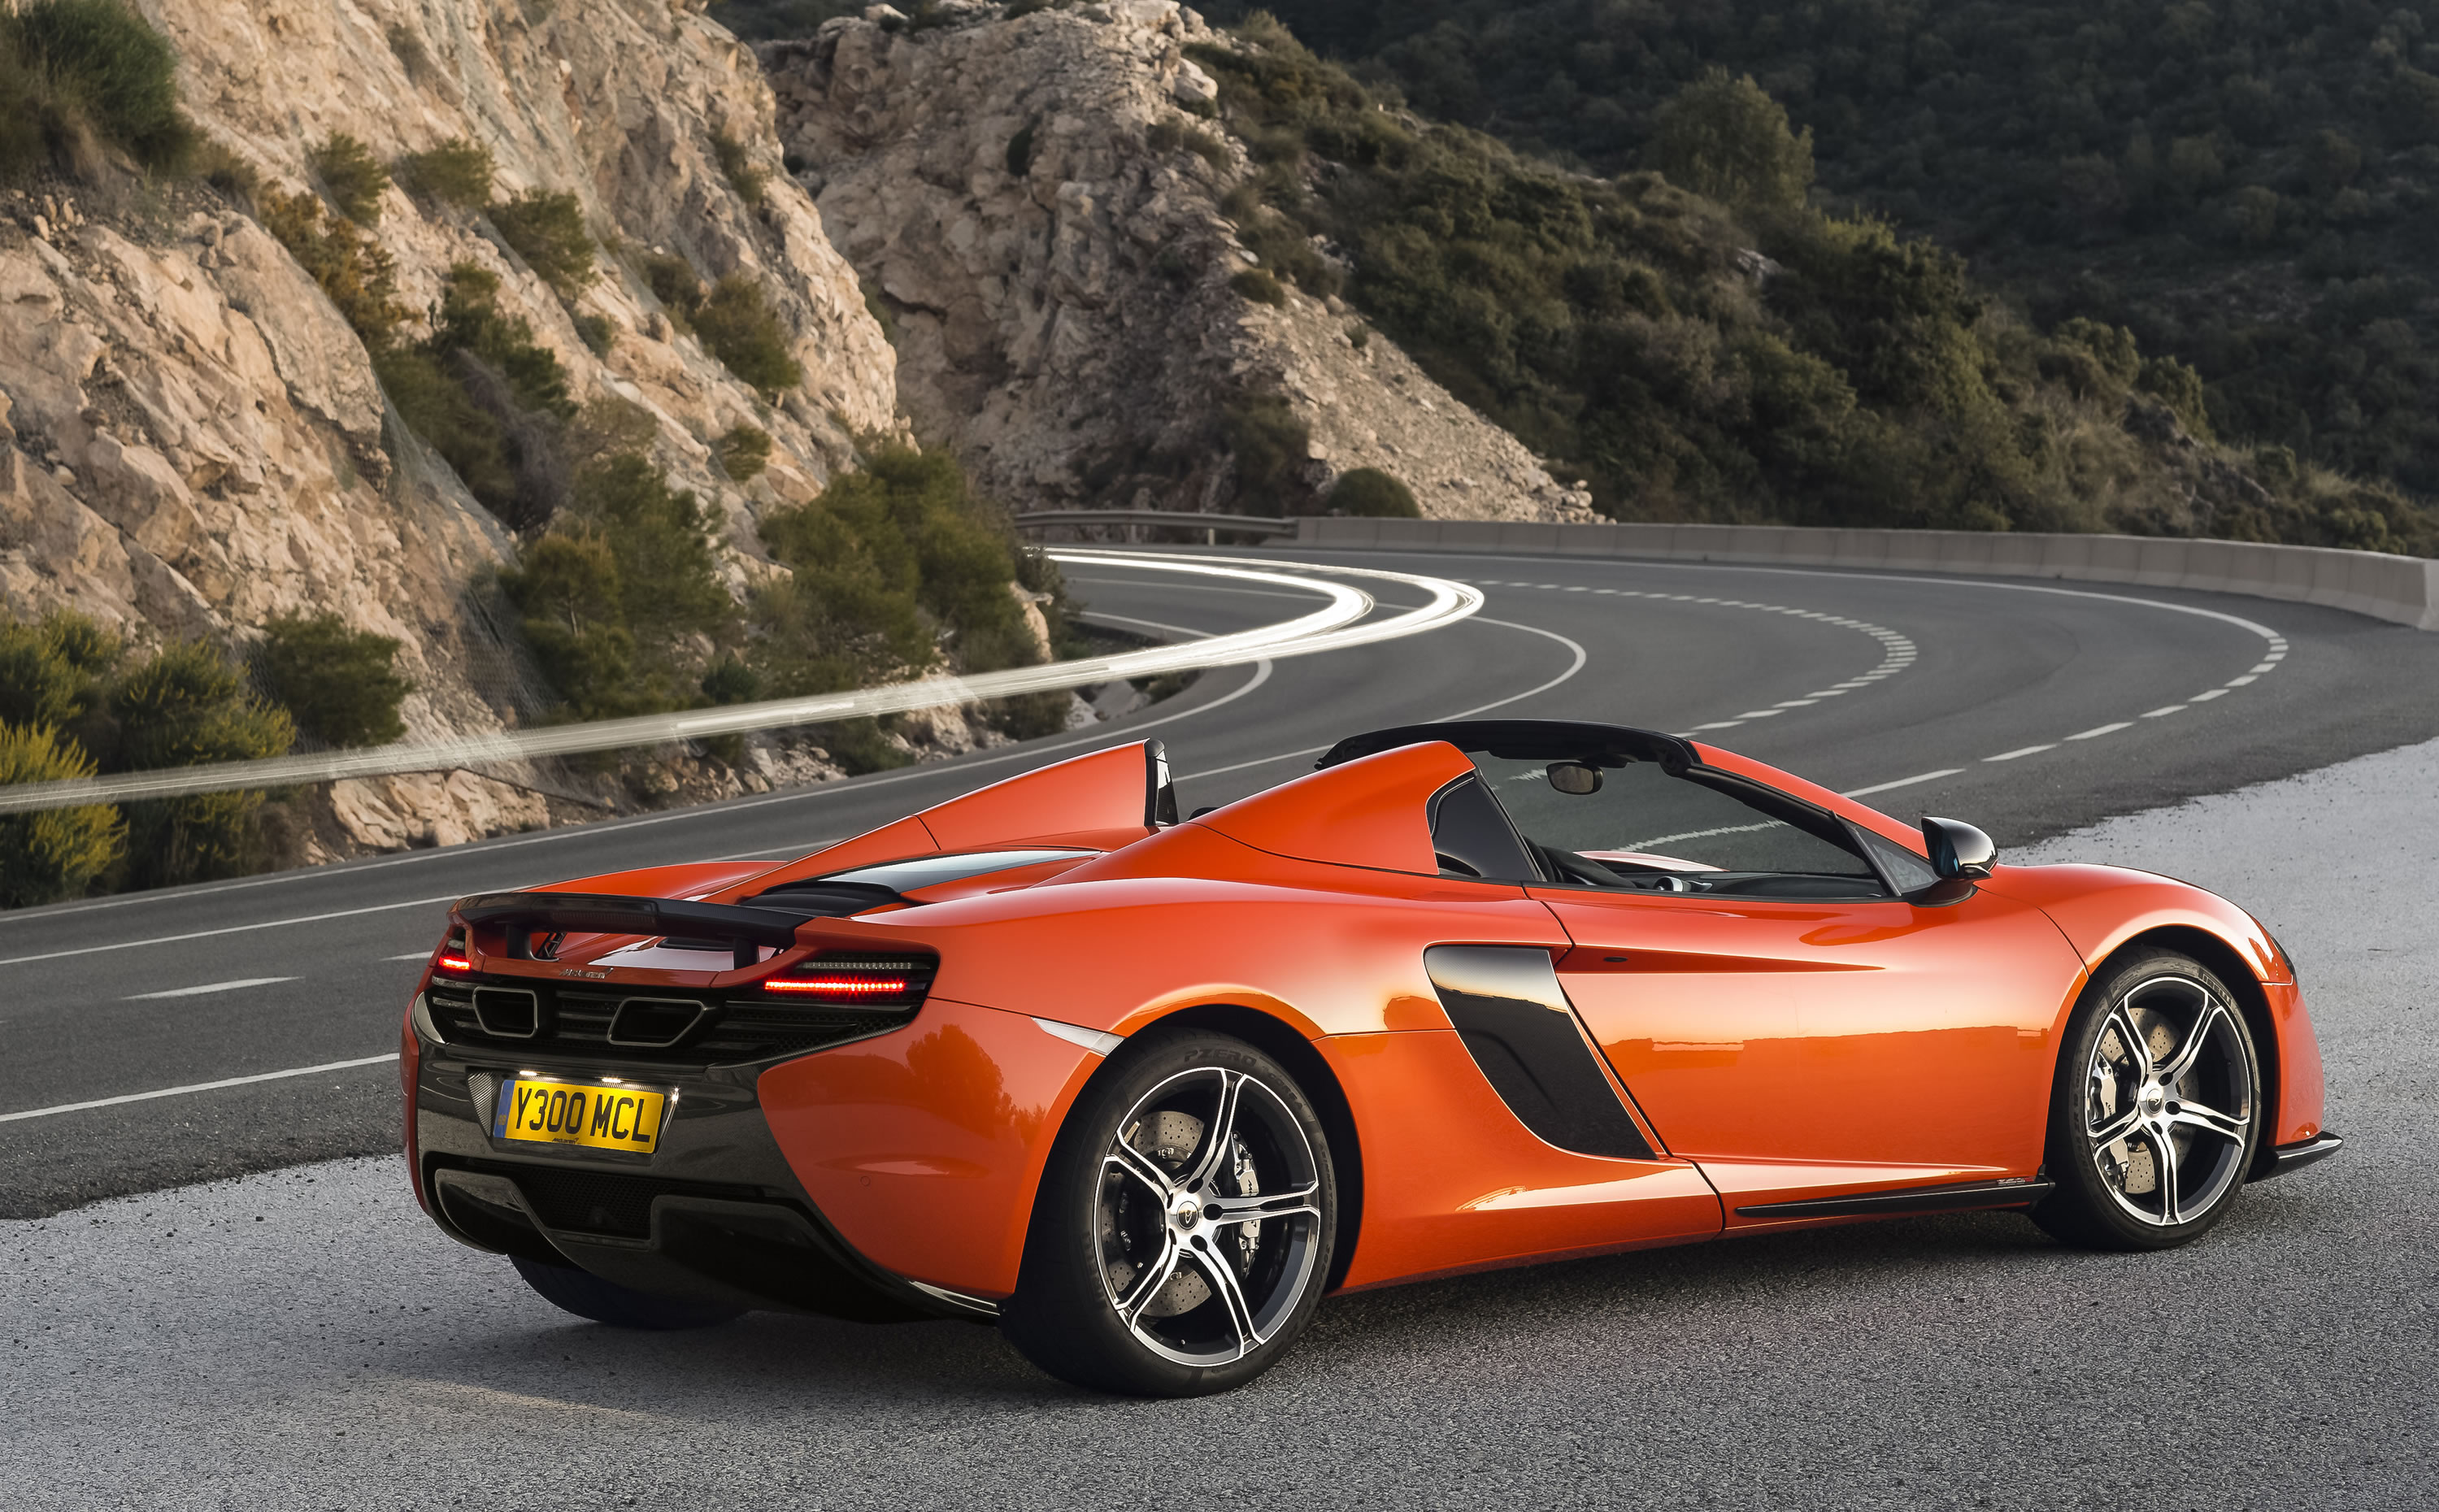 2015 McLaren 650S Spider Photos, Specs And Review